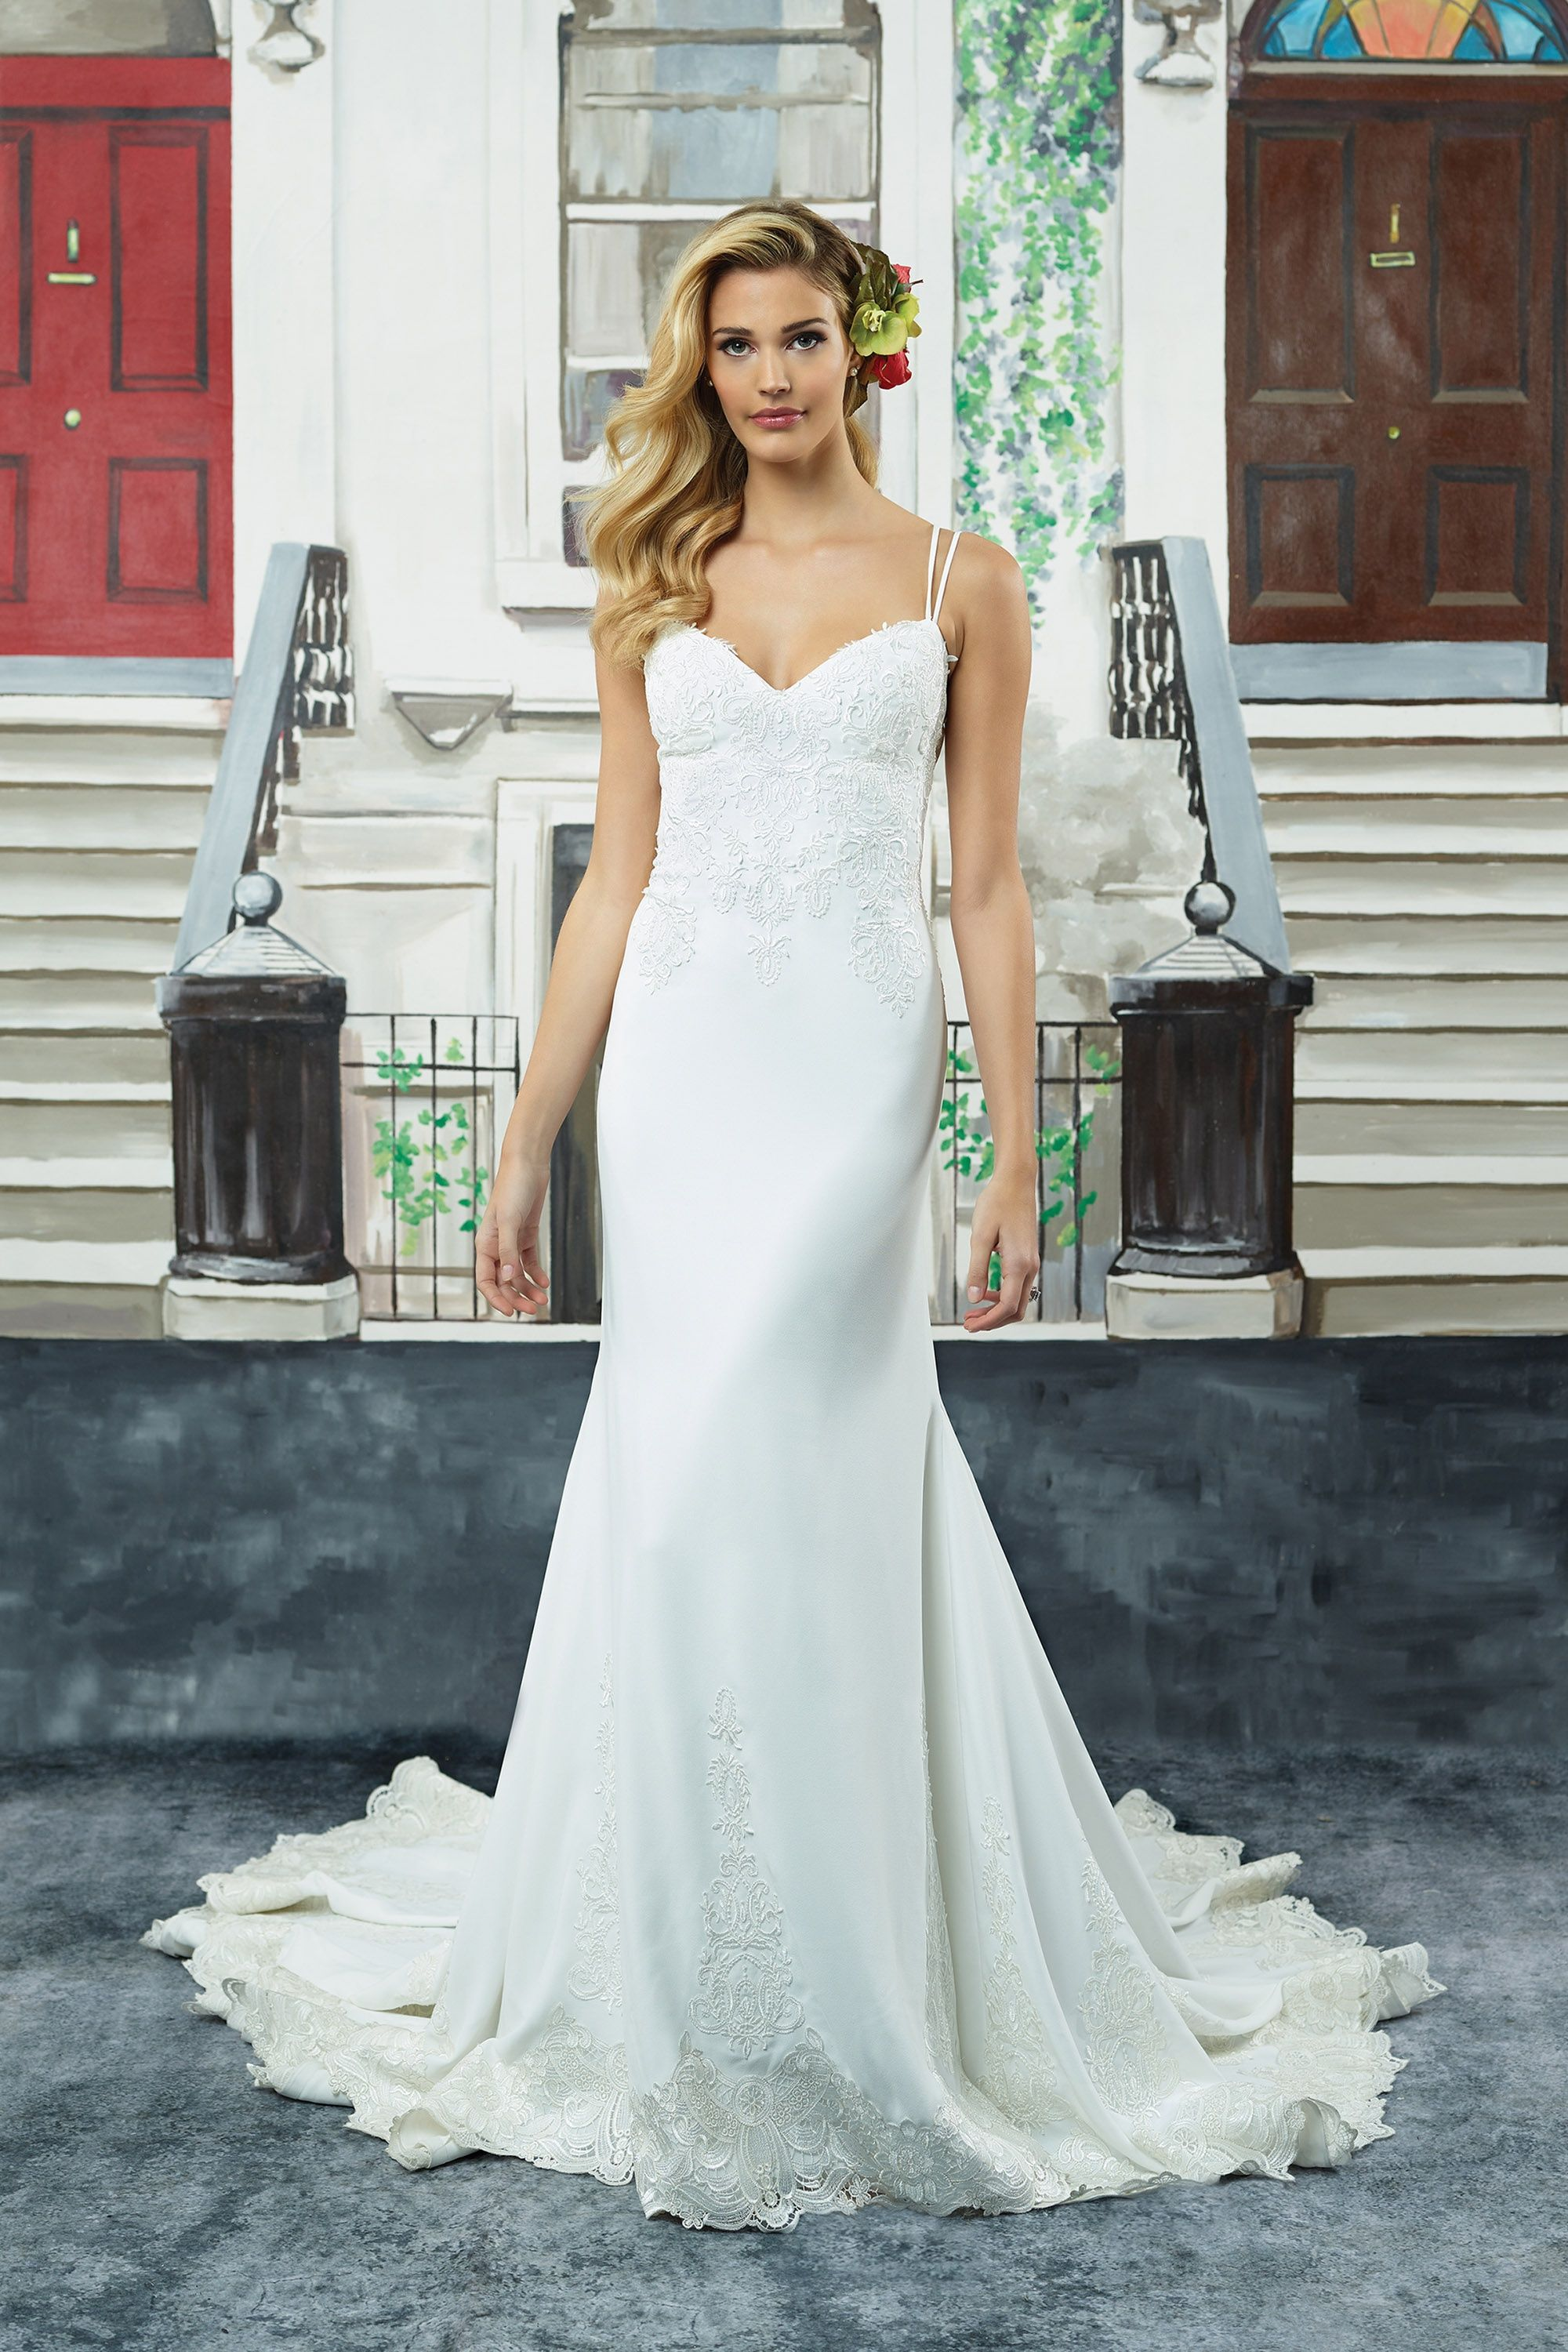 Embroidered lace wedding dress  Embroidered Lace Crepe Fit and Flare Gown with Dual Spaghetti Straps